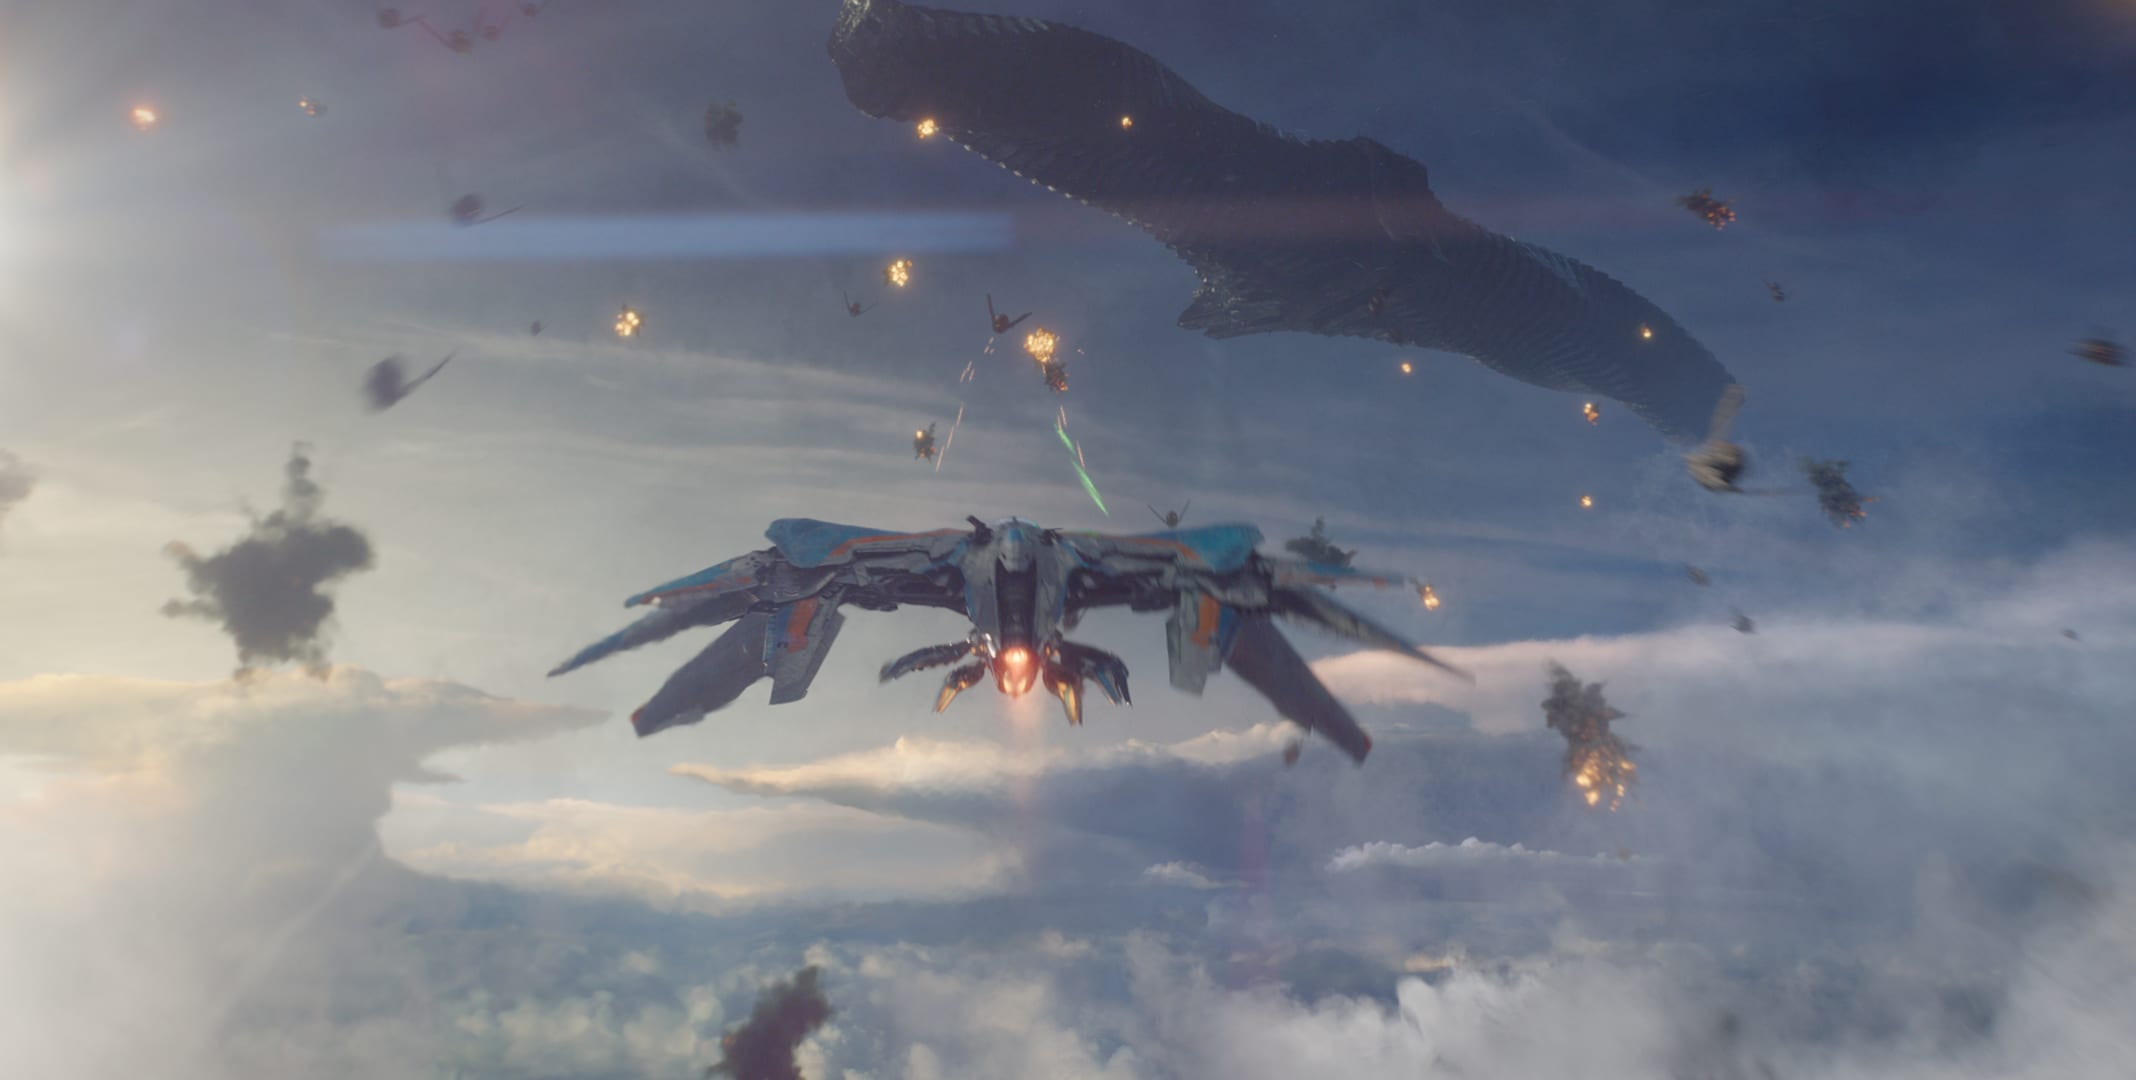 Space ships attacking Ronan's Mothership in the movie Guardians of the Galaxy